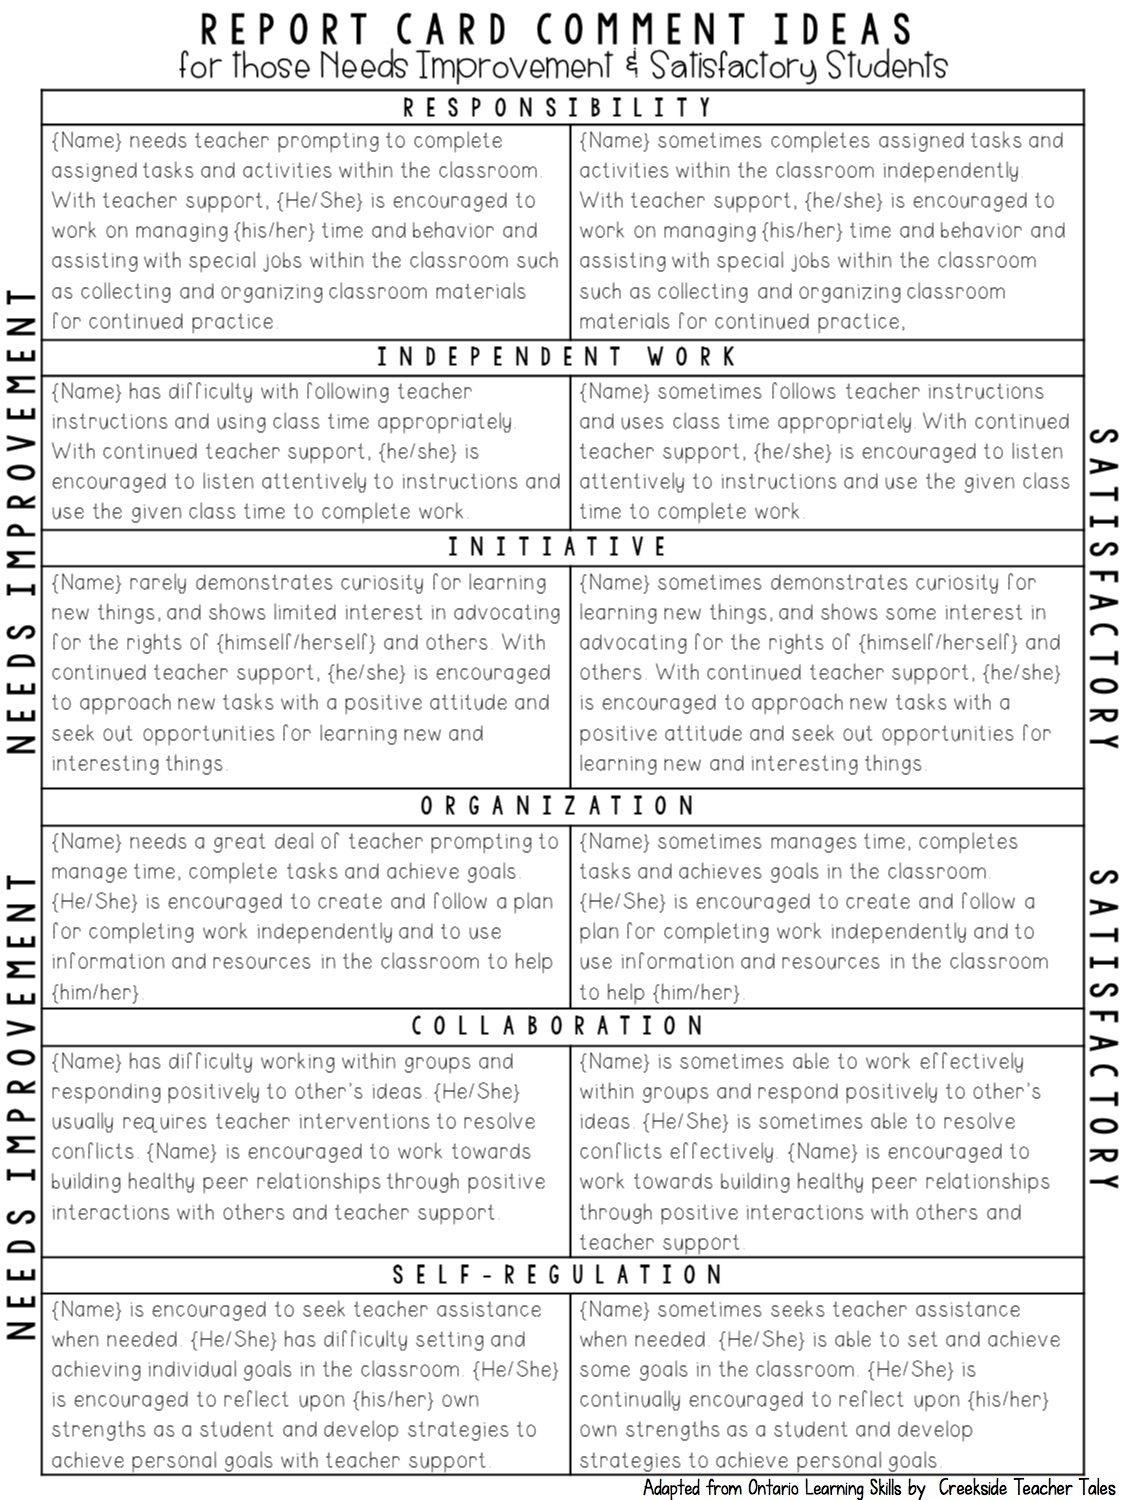 Tips For Not Letting Report Cards Get You Down | Assessment | Report - Free Printable Report Card Comments